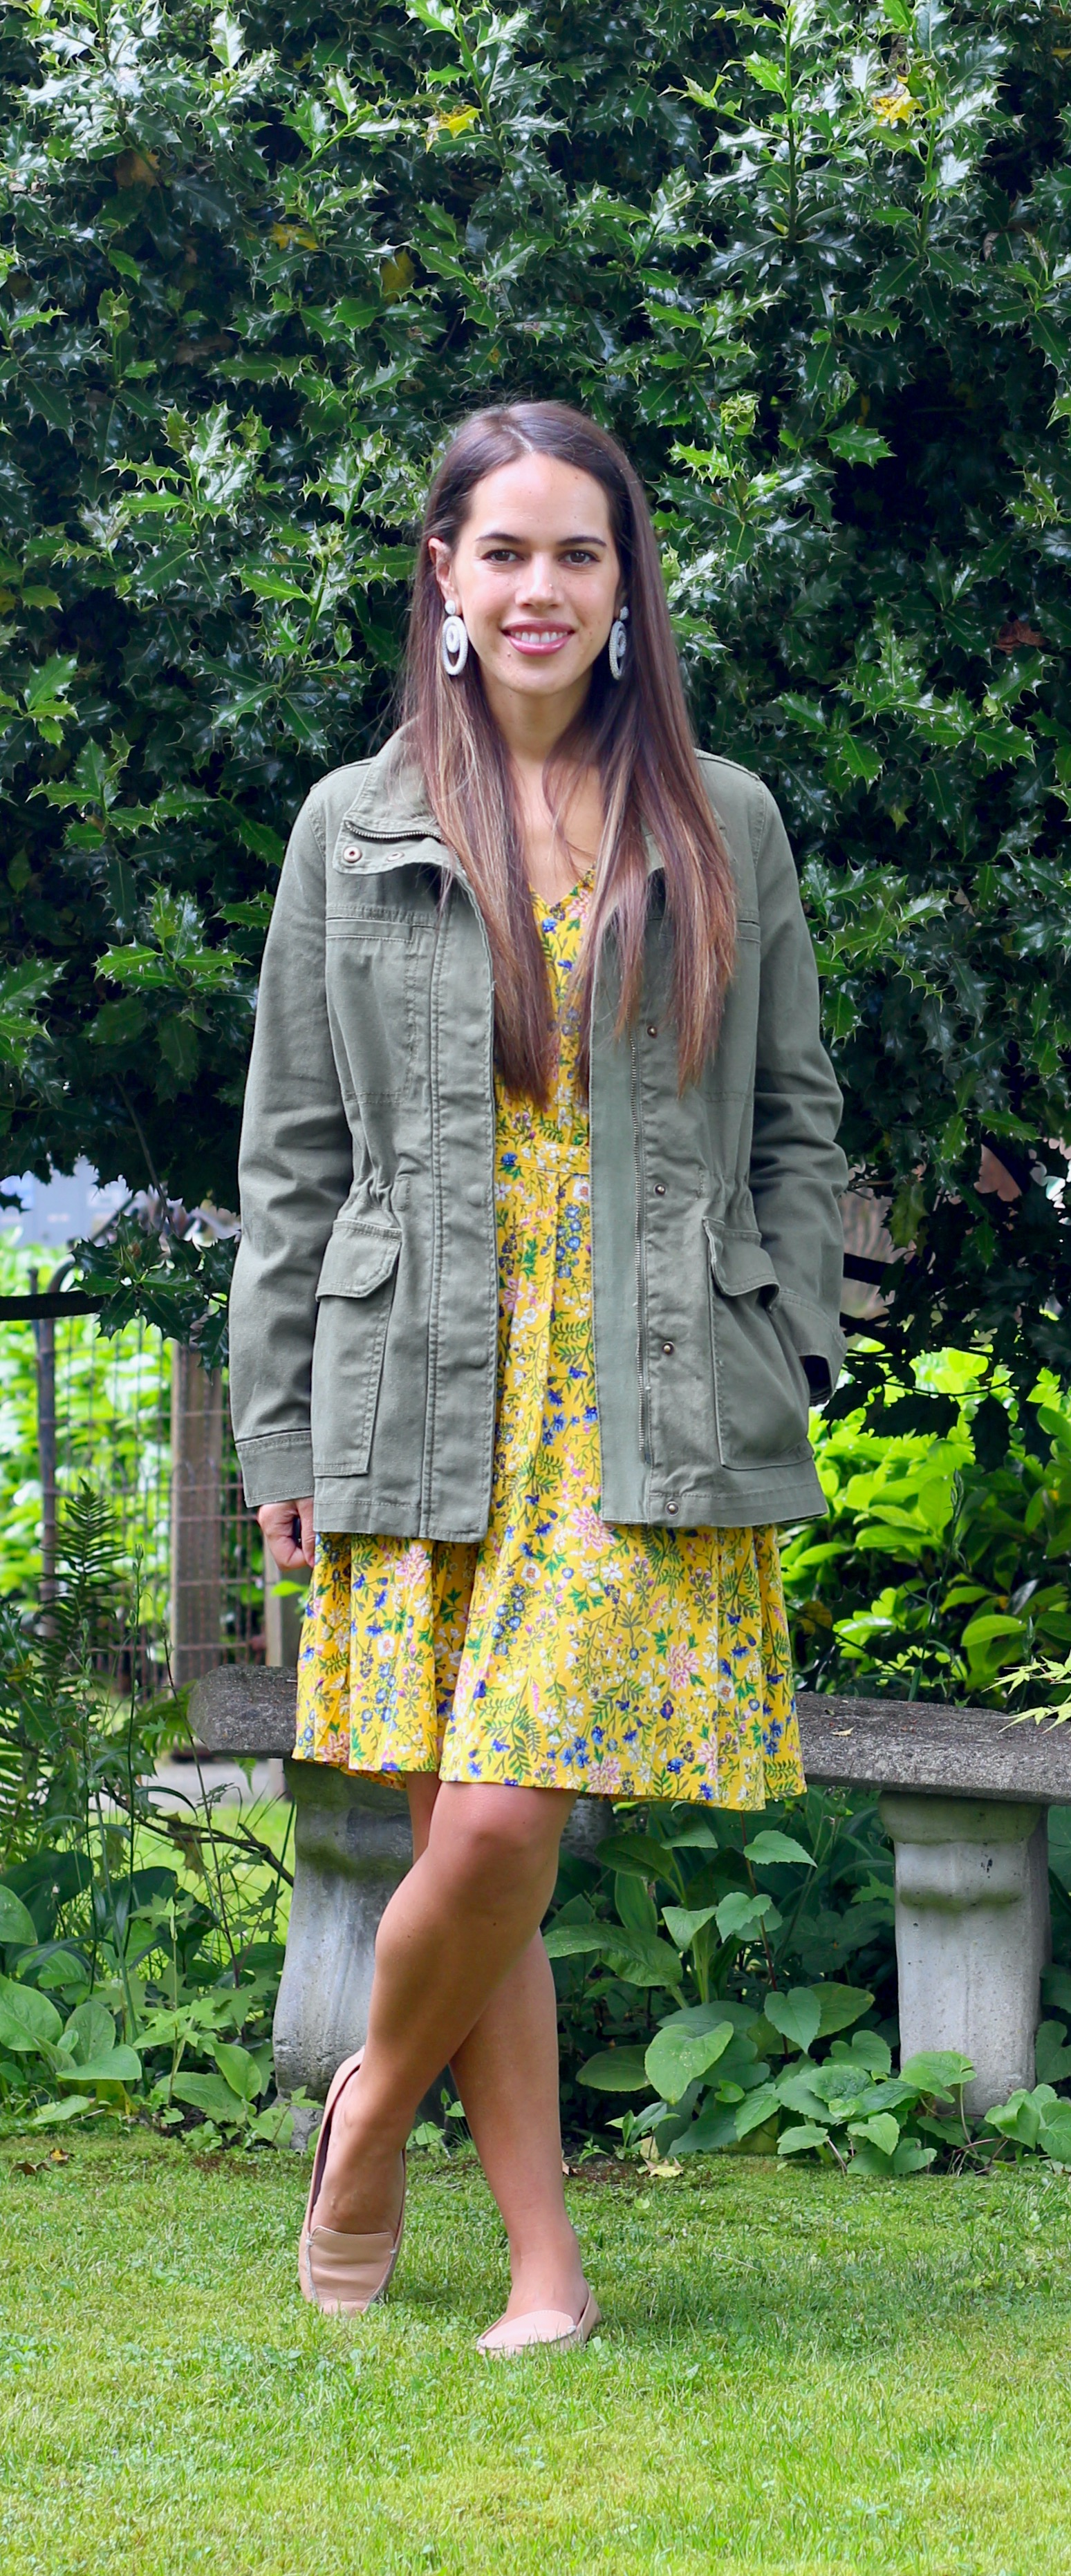 Jules in Flats - Waist-Defined V-Neck Floral Dress with Madewell Dispatch Army Jacket and Statement Earrings